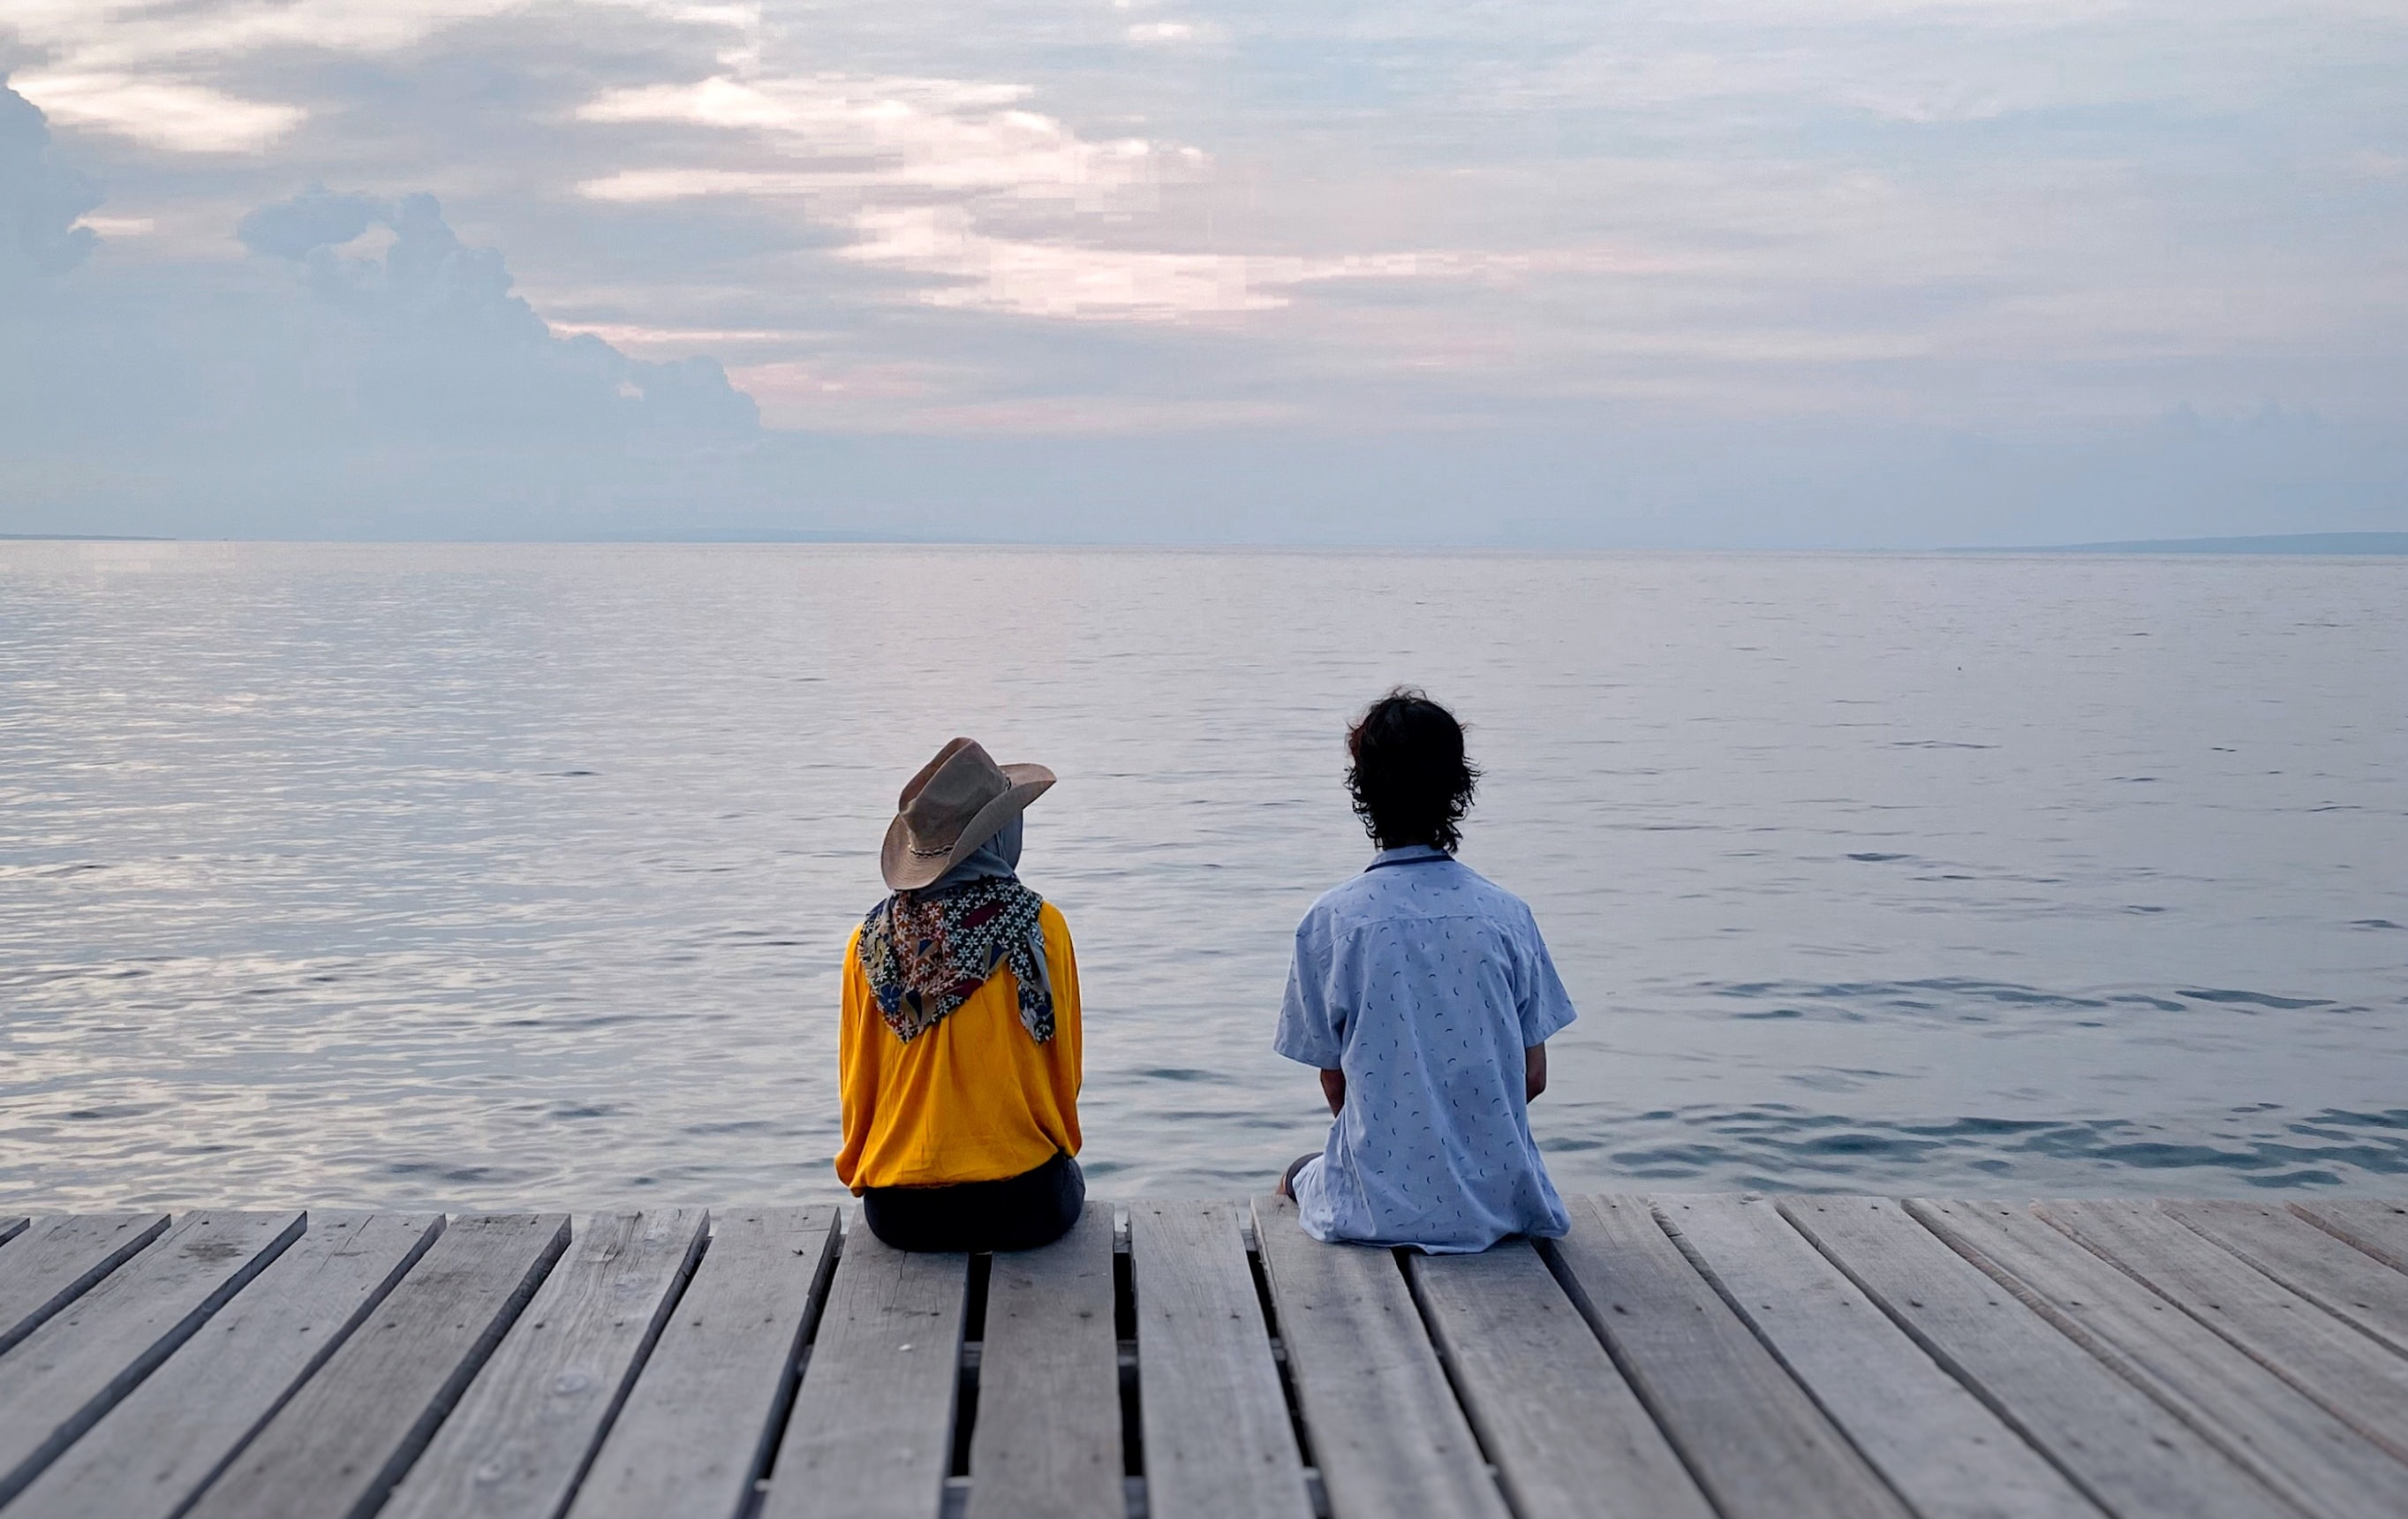 Image of two people sitting on a dock next to a lake